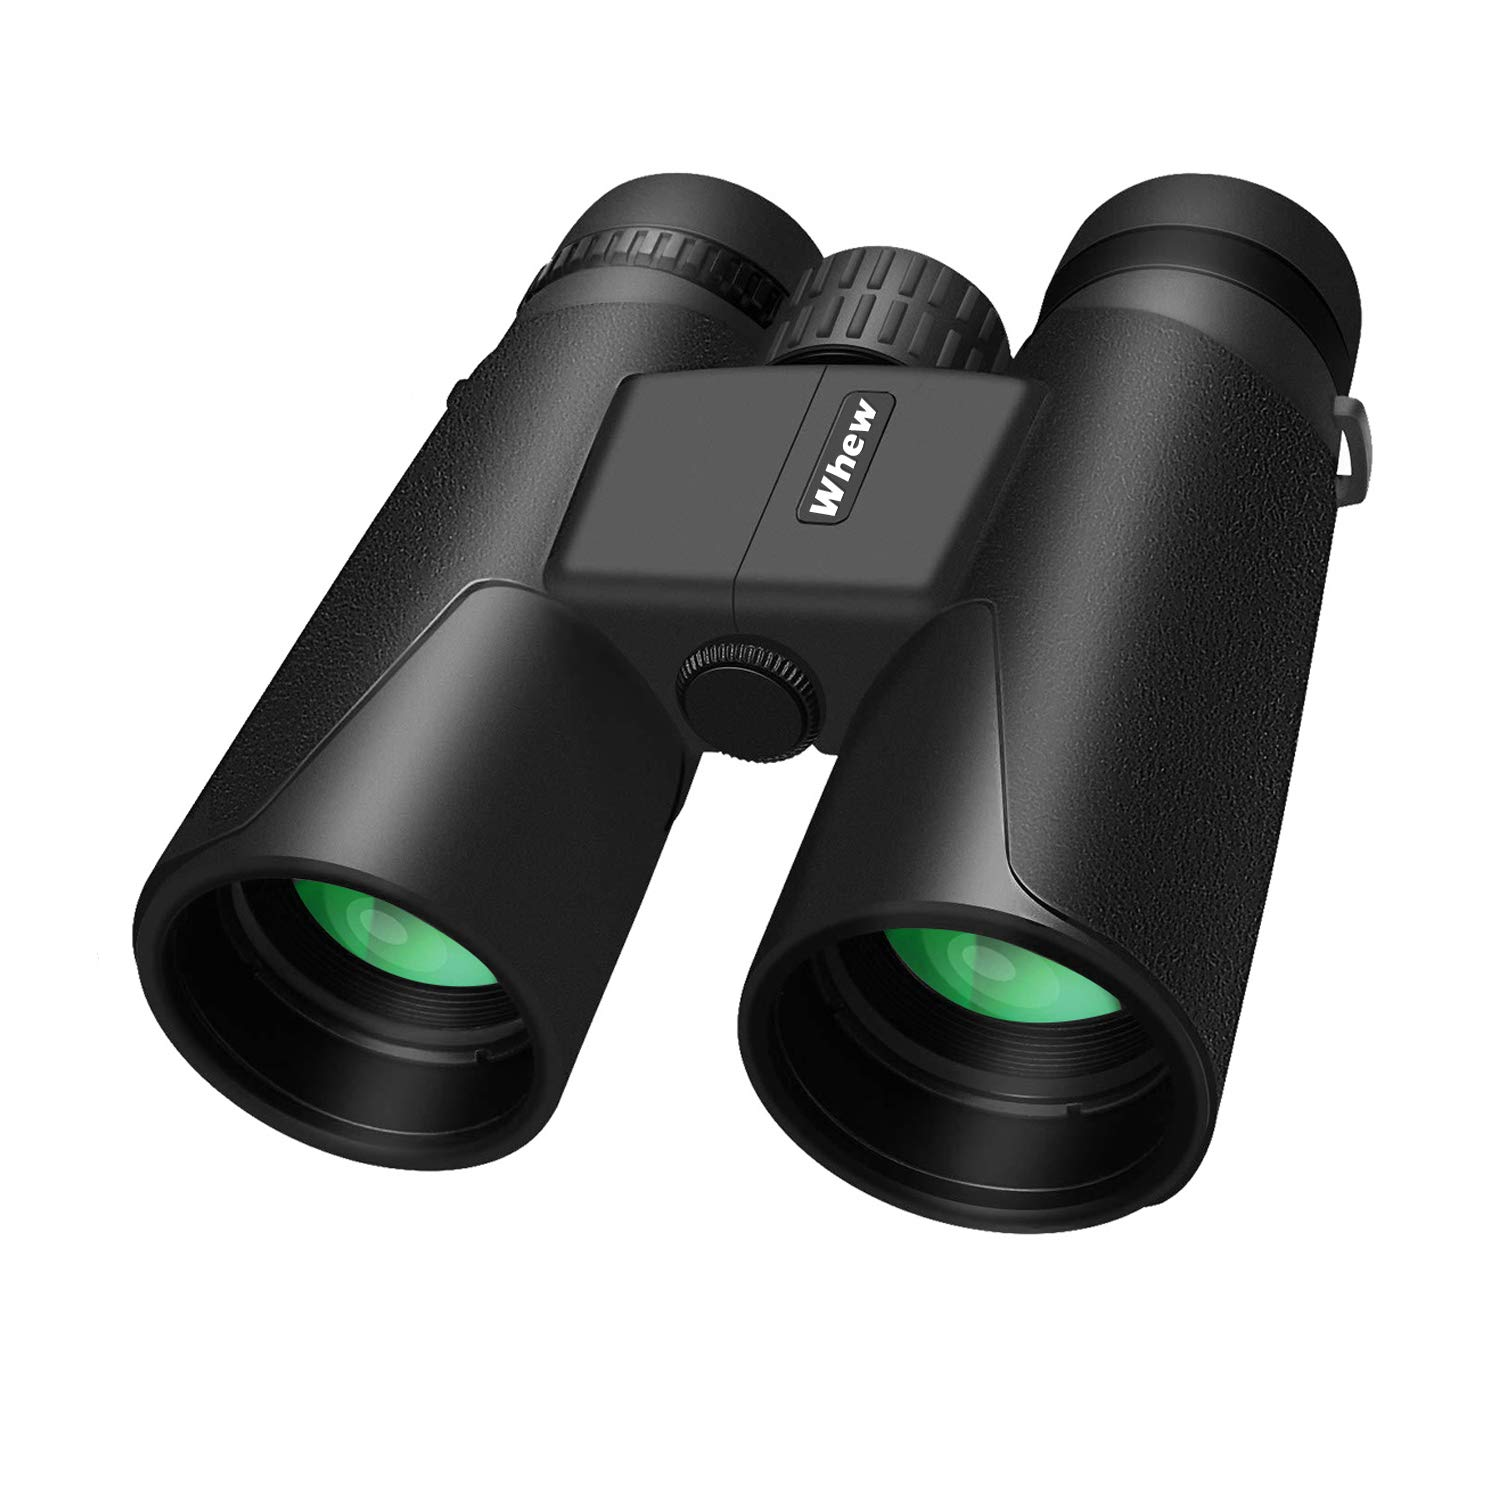 Whew Binoculars for Adults,10x42 Compact HD Binoculars with Low Light Night Vision for Bird Watching Hunting Hiking Travel Stargazing Concerts Sports, BAK4 Prism FMC Lens with Strap Carrying Bag by Whew